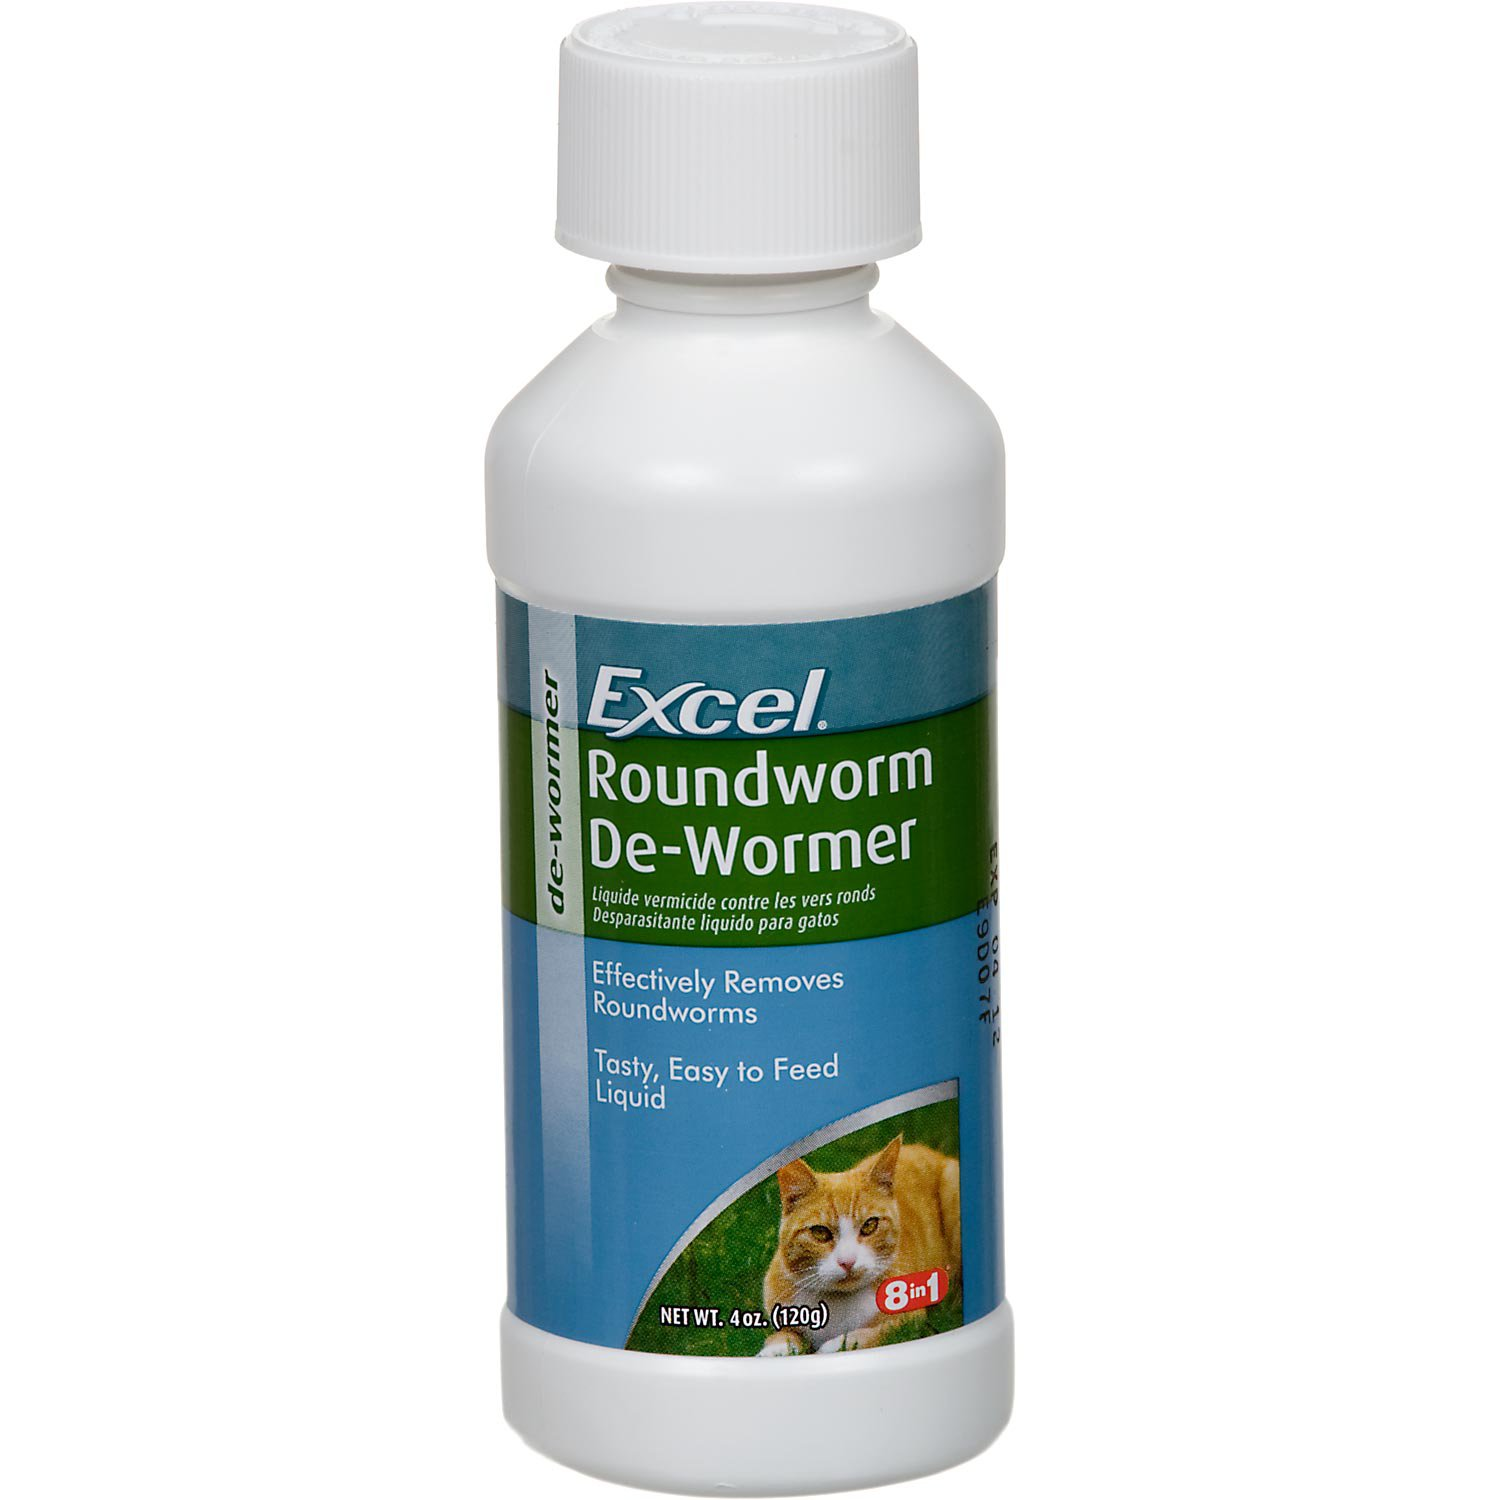 Excel Roundworm Cat De-Wormer